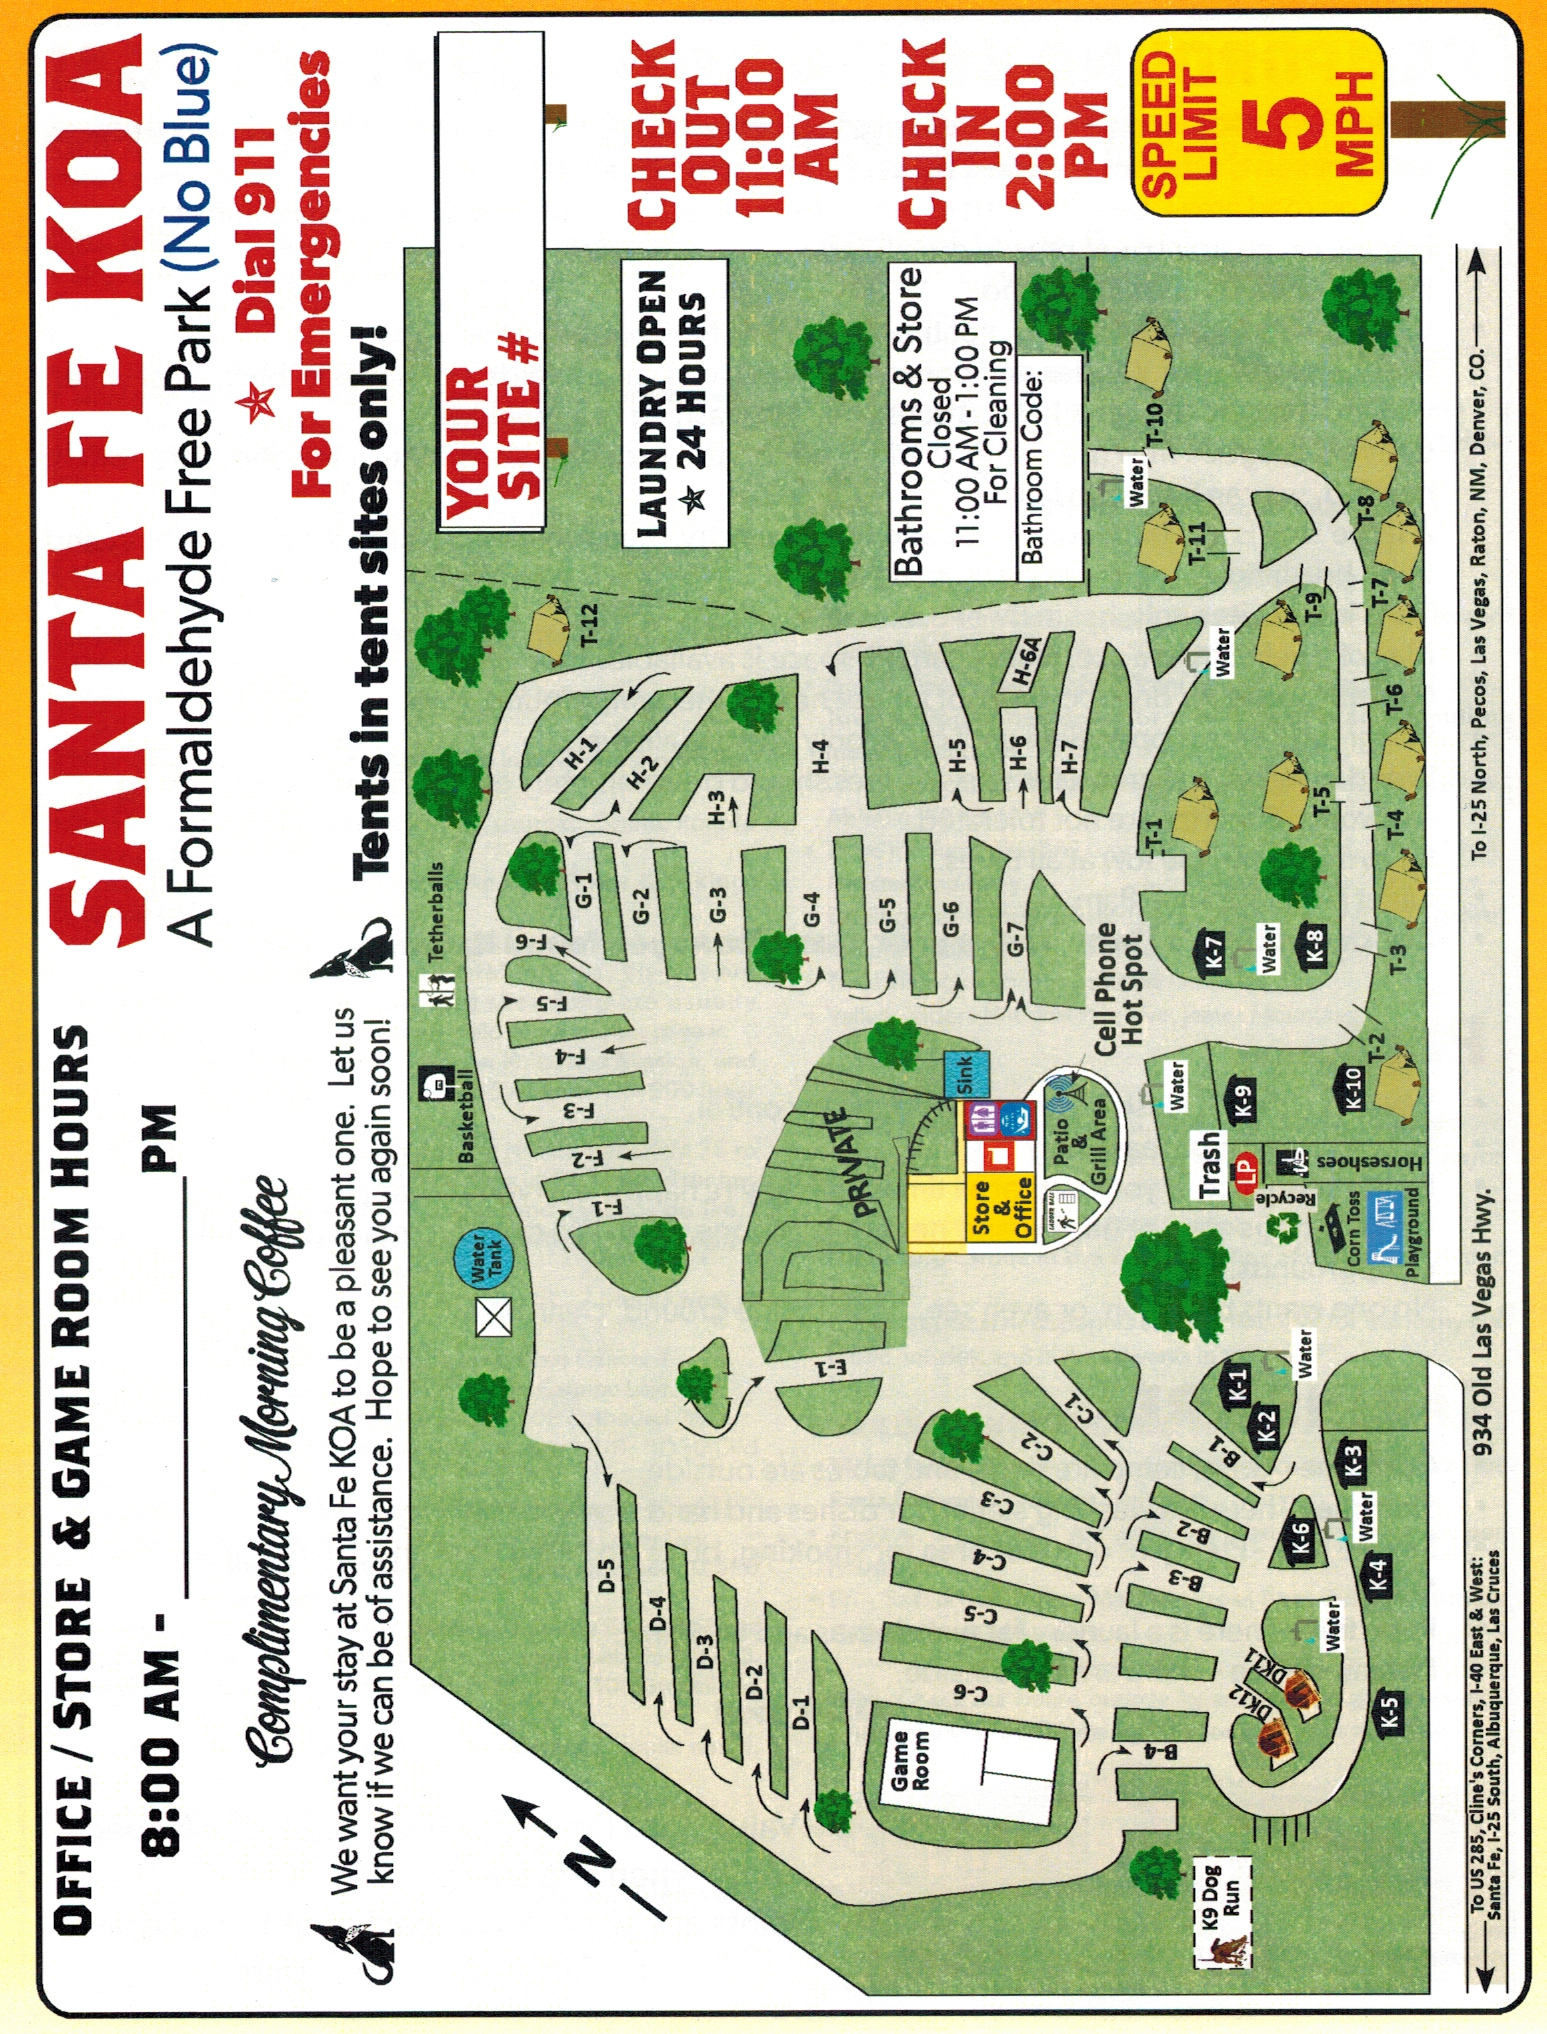 Santa Fe, New Mexico Campground | Santa Fe KOA on chicago museums map, clayton ok map, espanola map, paris museums map, shopping map, philadelphia museums map, boston museums map, contact us map,